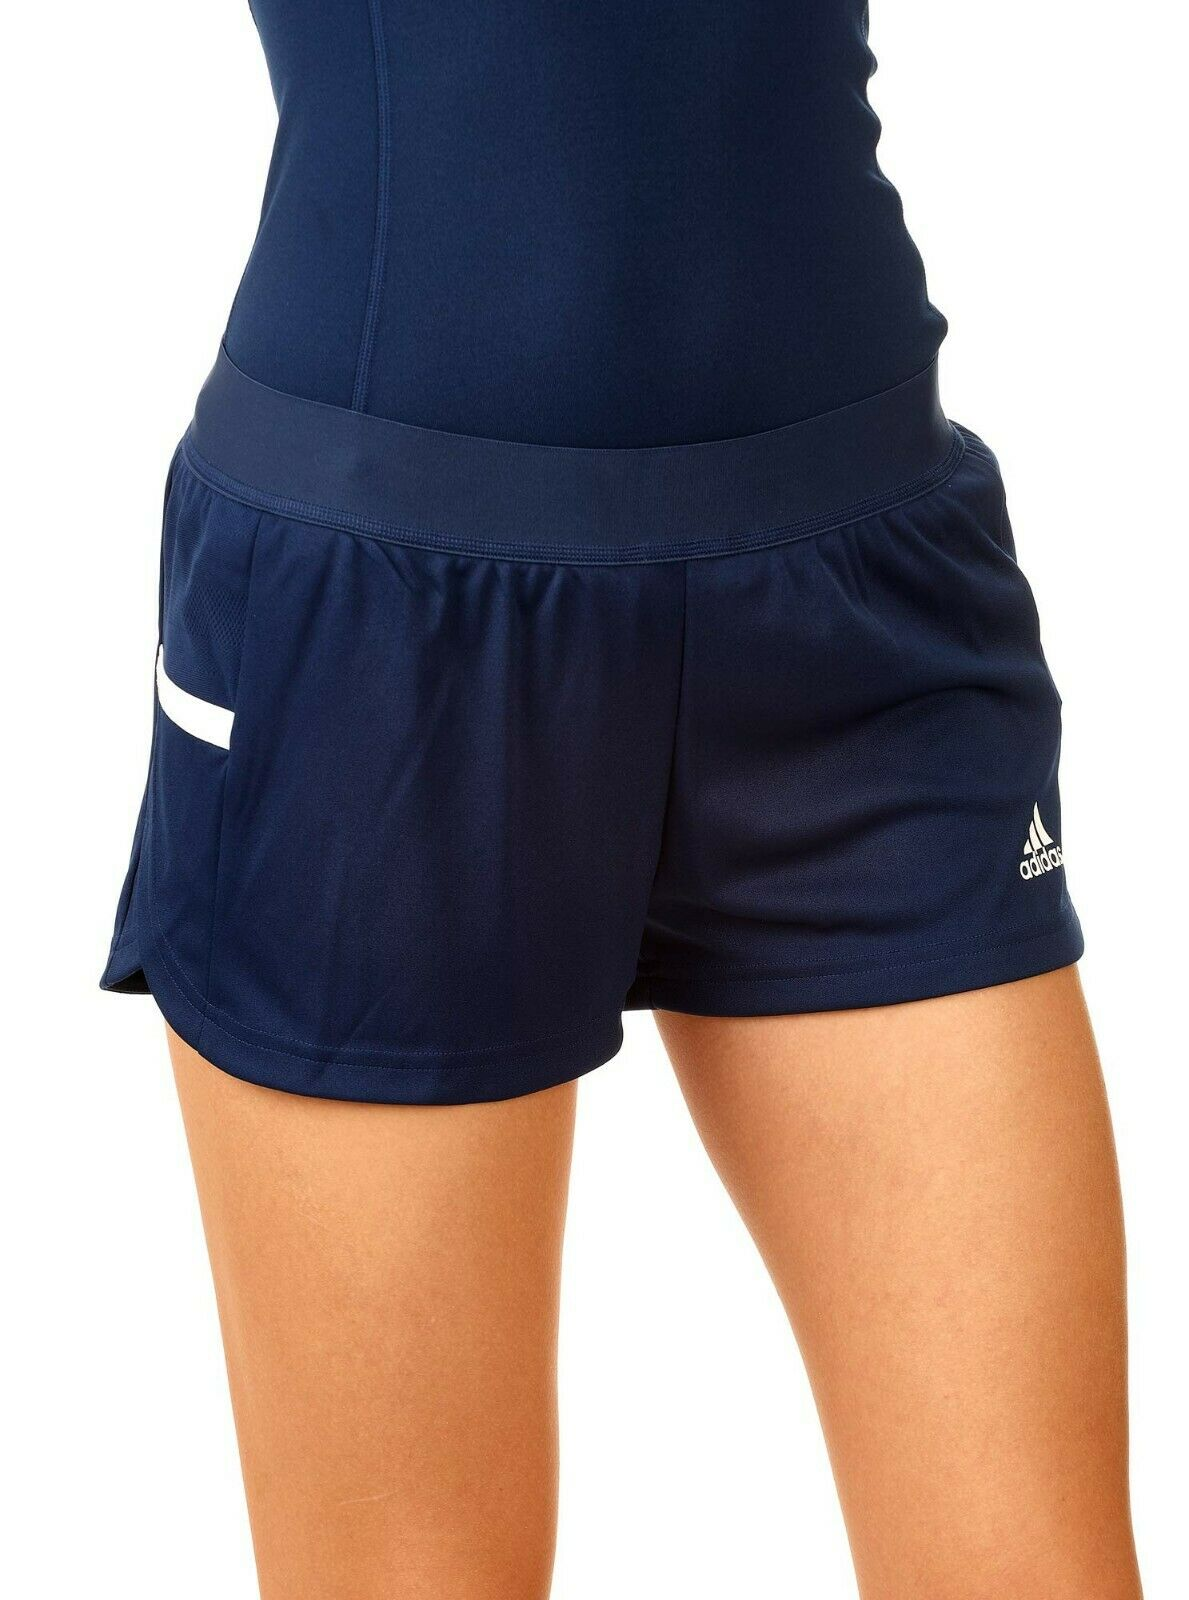 Details about Adidas T19 Team Wear Women's Running Shorts Black Navy Gym Shorts Climacool